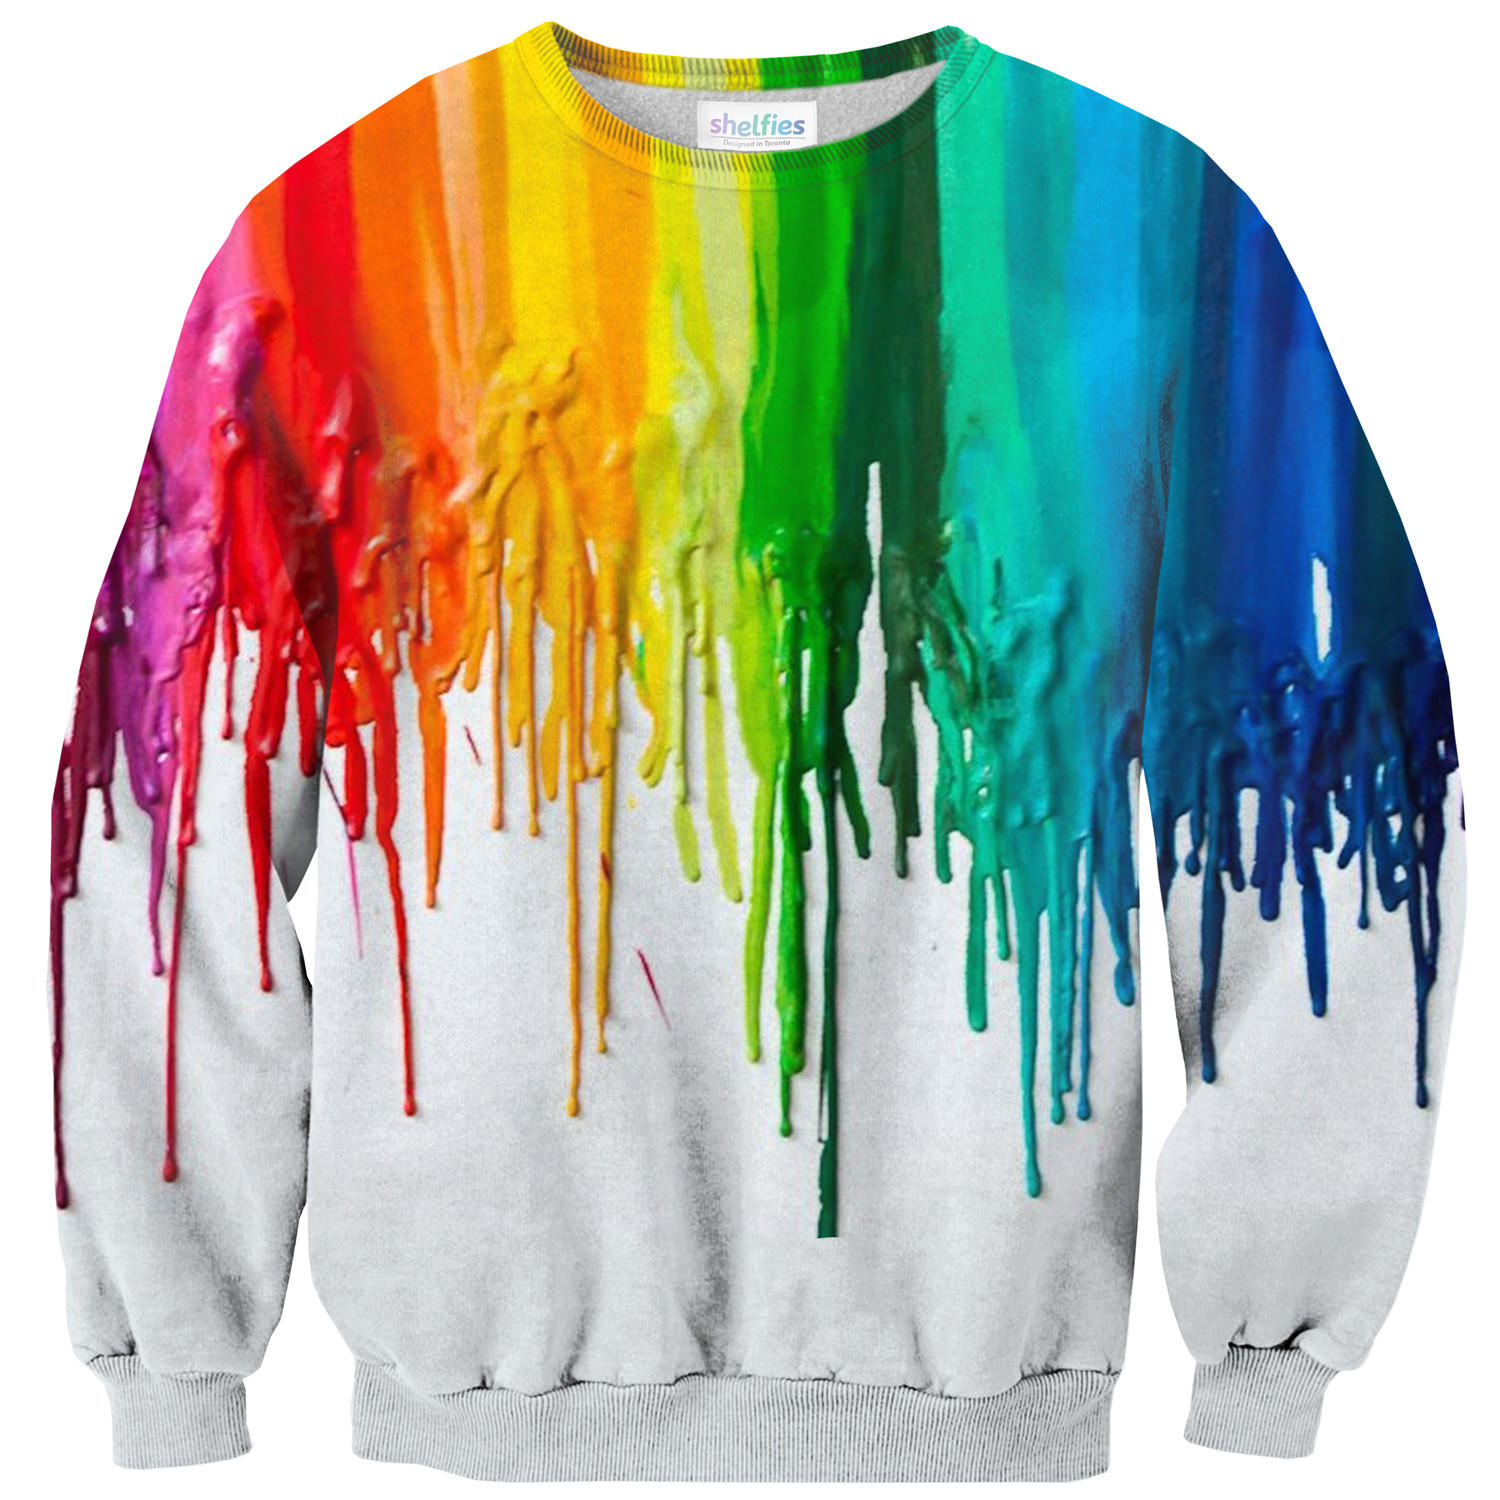 Melted Crayon Sweater From Shelfies Sweaters